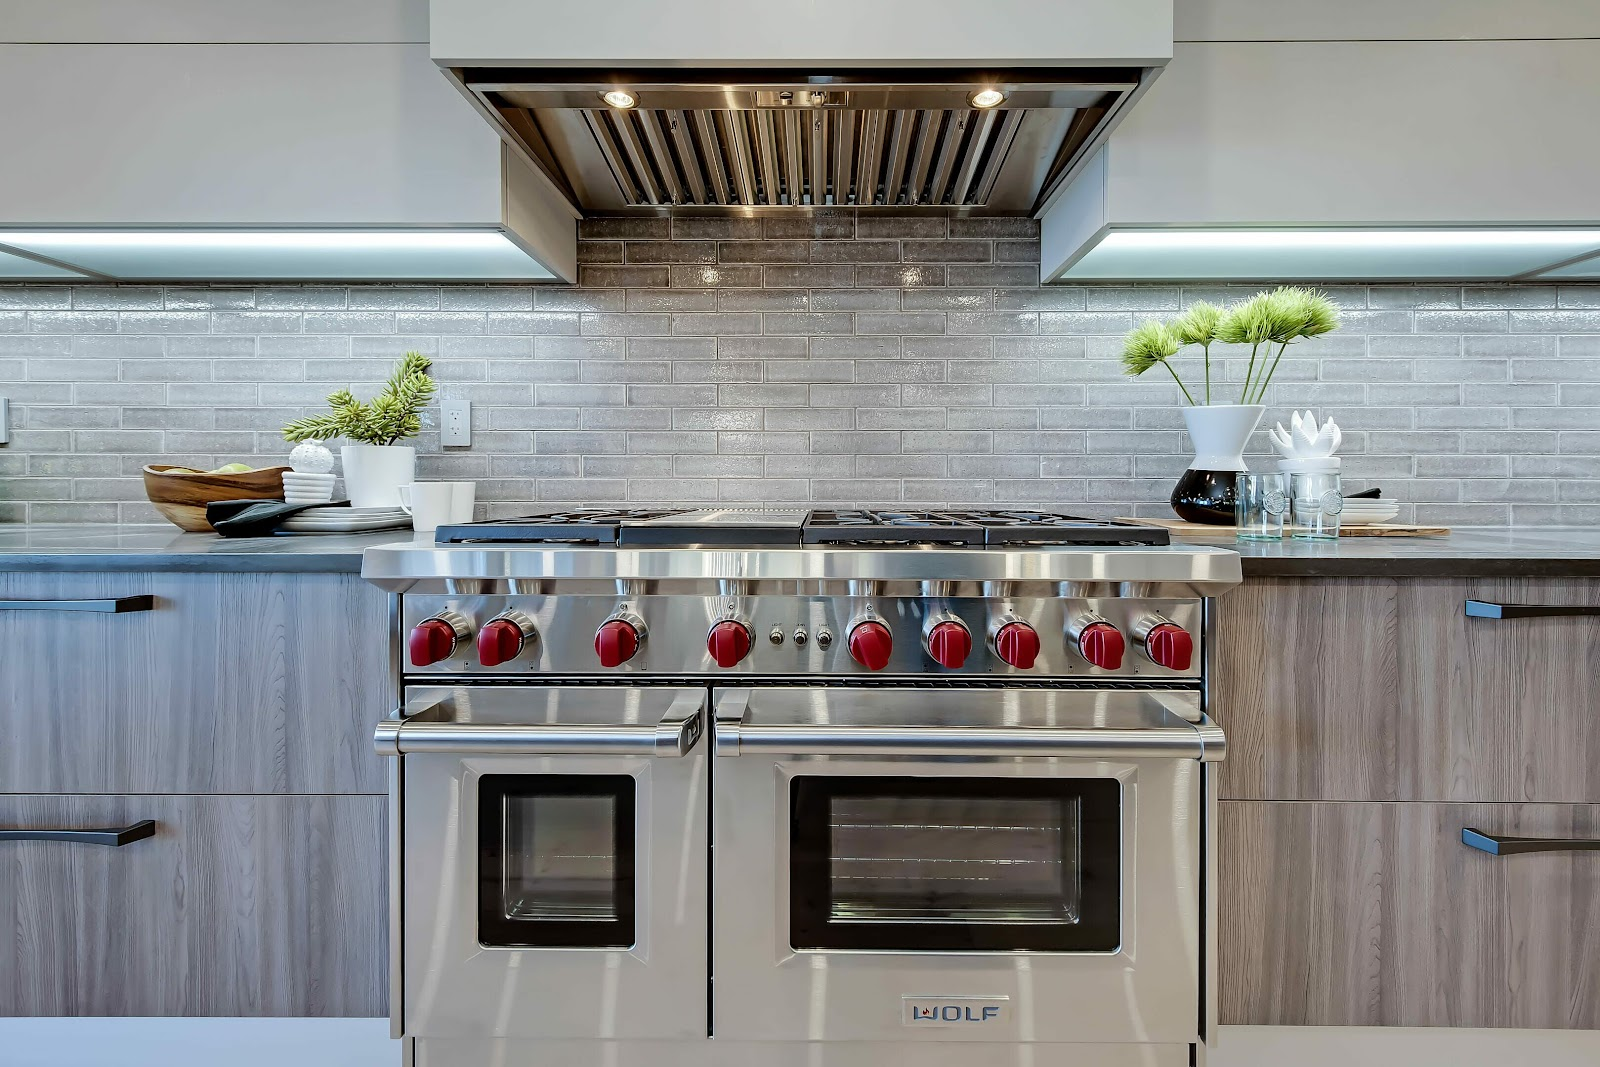 beautiful 6-burner range with hidden hood red knobs centrepiece calgary kitchen design